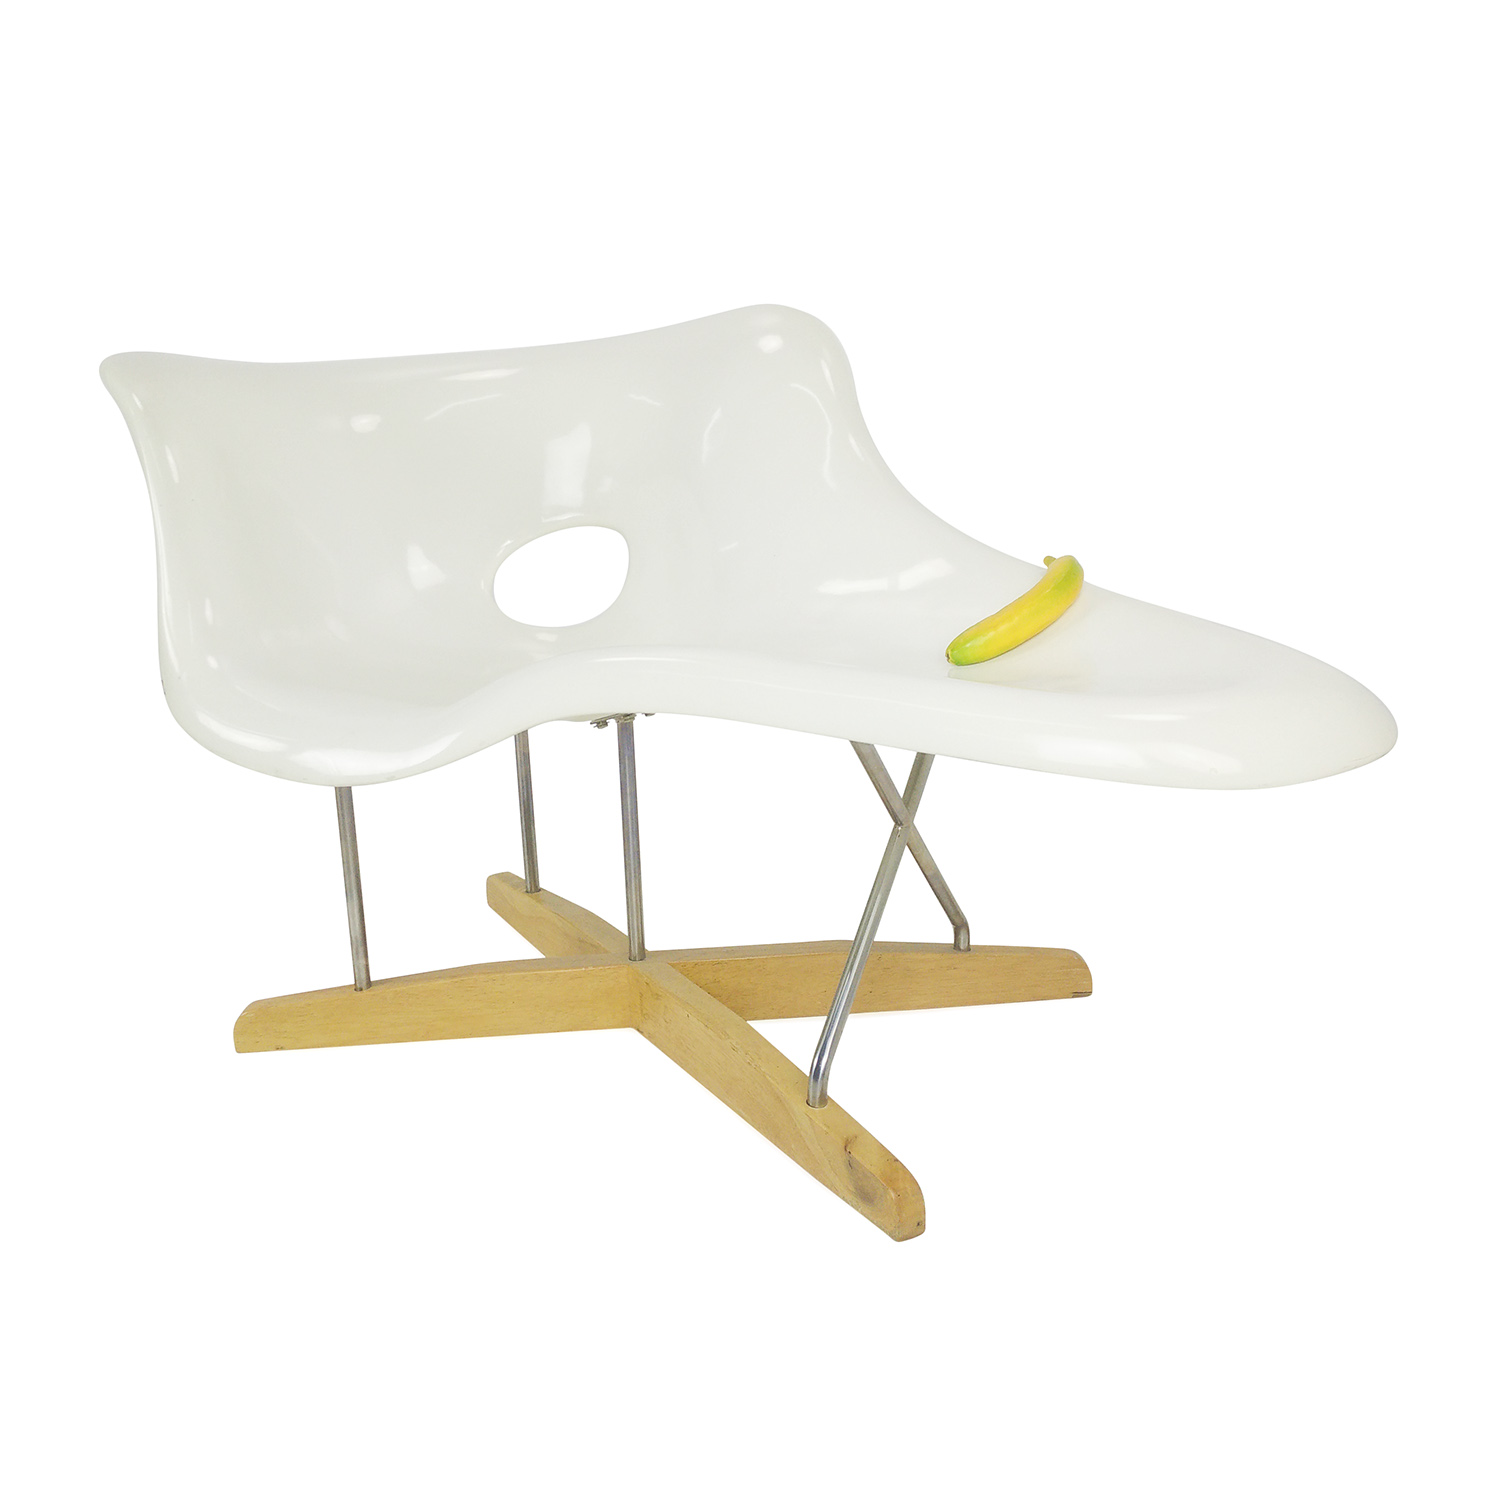 63 off eames replica of la chaise la chaise replica for Eames replica